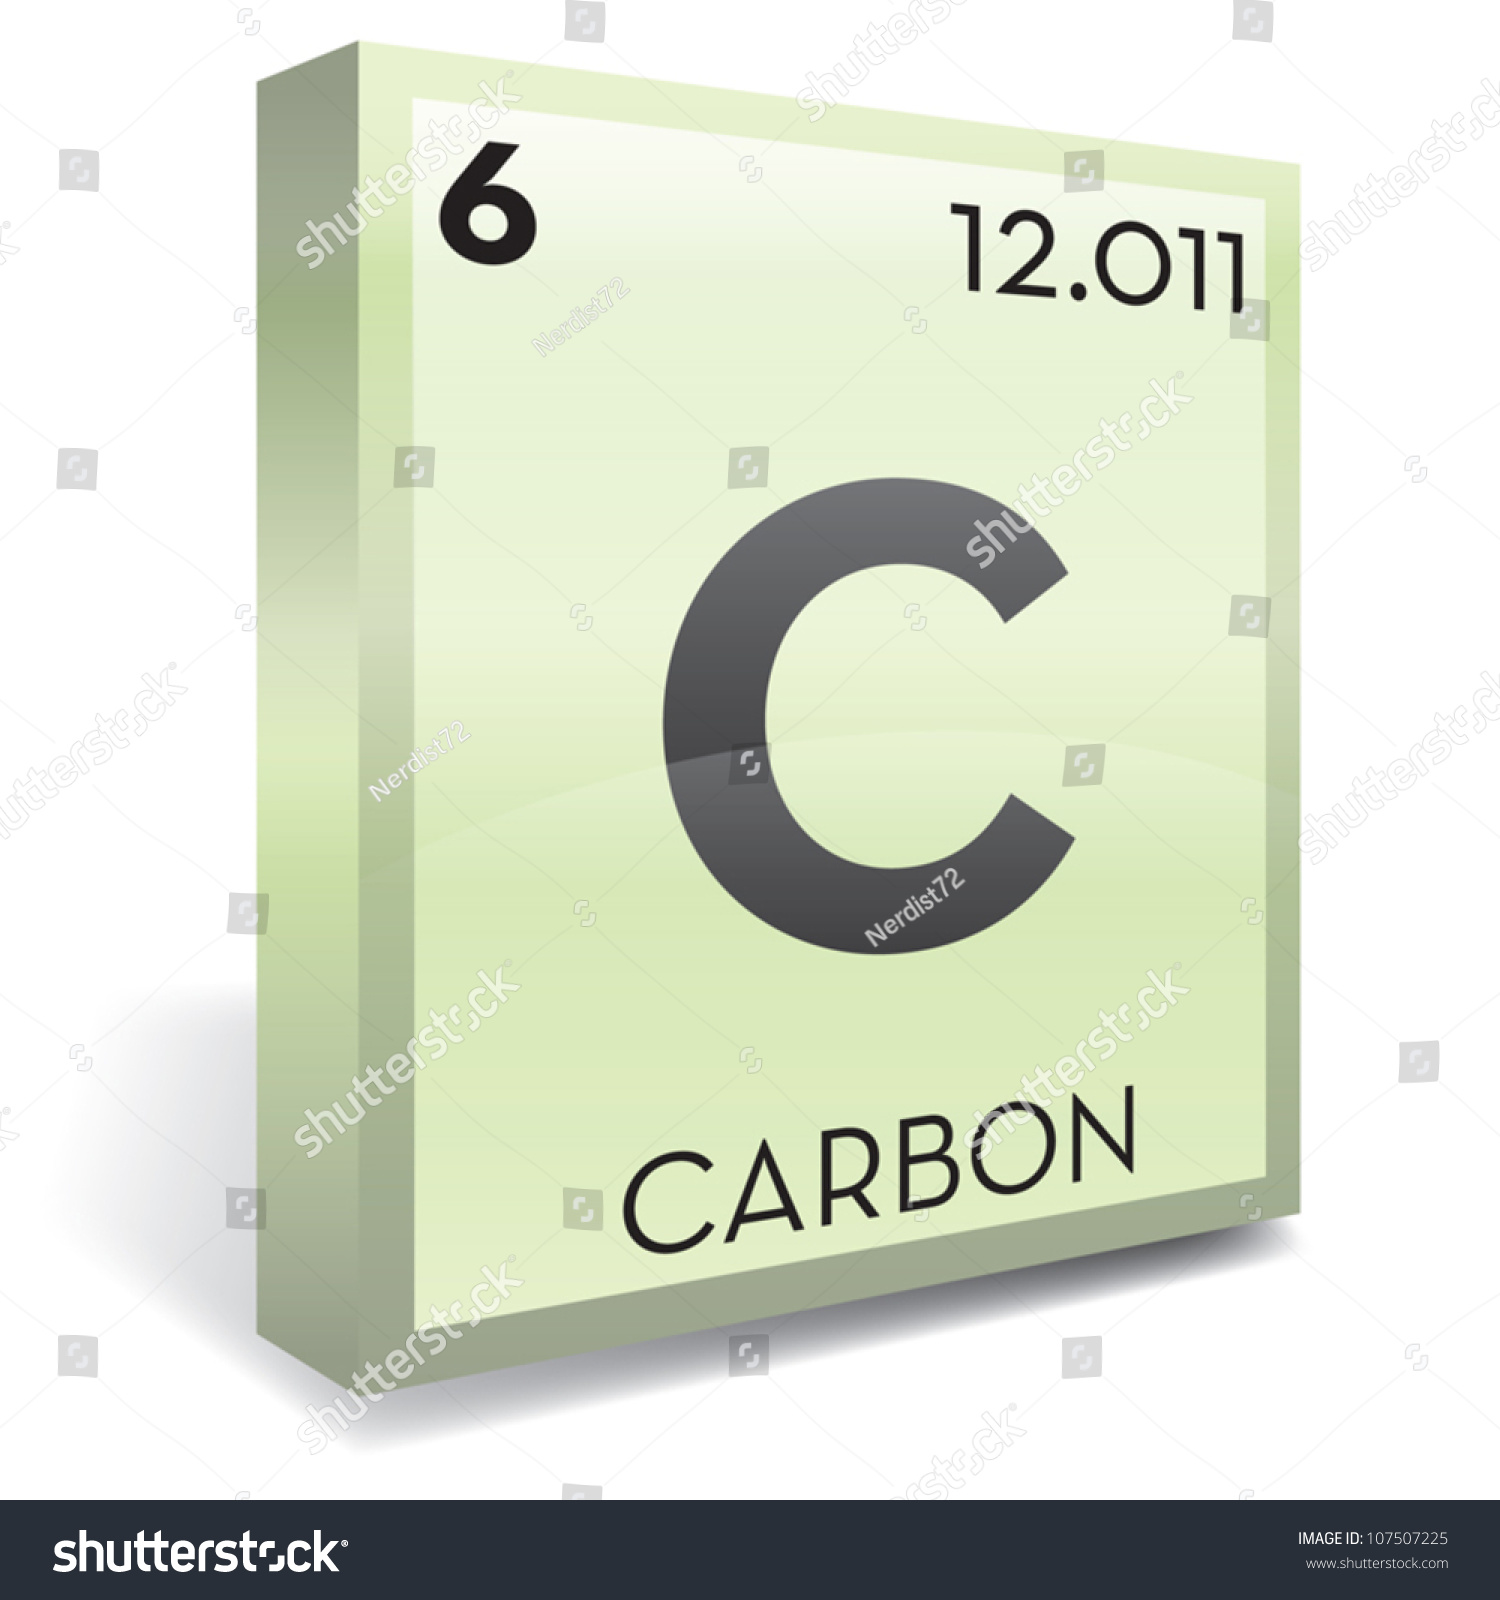 Carbon element periodic table stock vector 107507225 shutterstock carbon element periodic table gamestrikefo Gallery